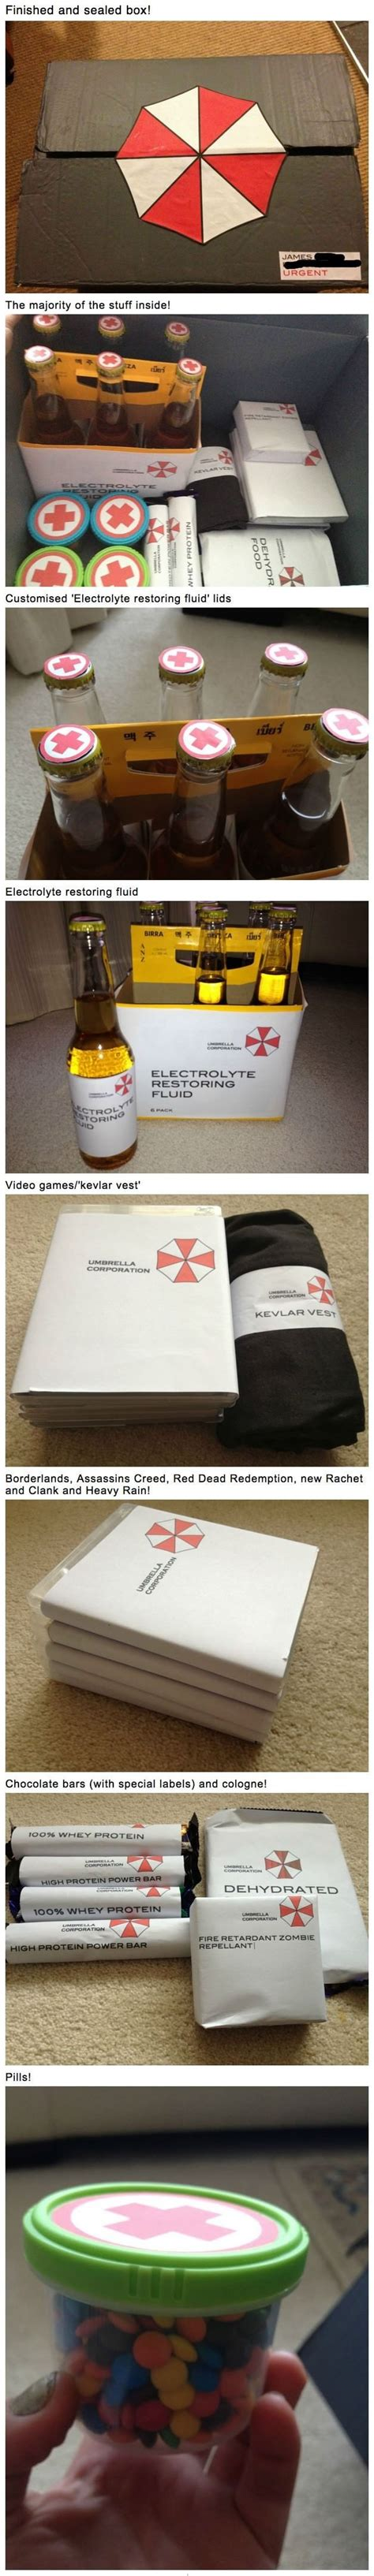 survival zombie kit resident evil birthday inspired diy surprises gift funny gifts